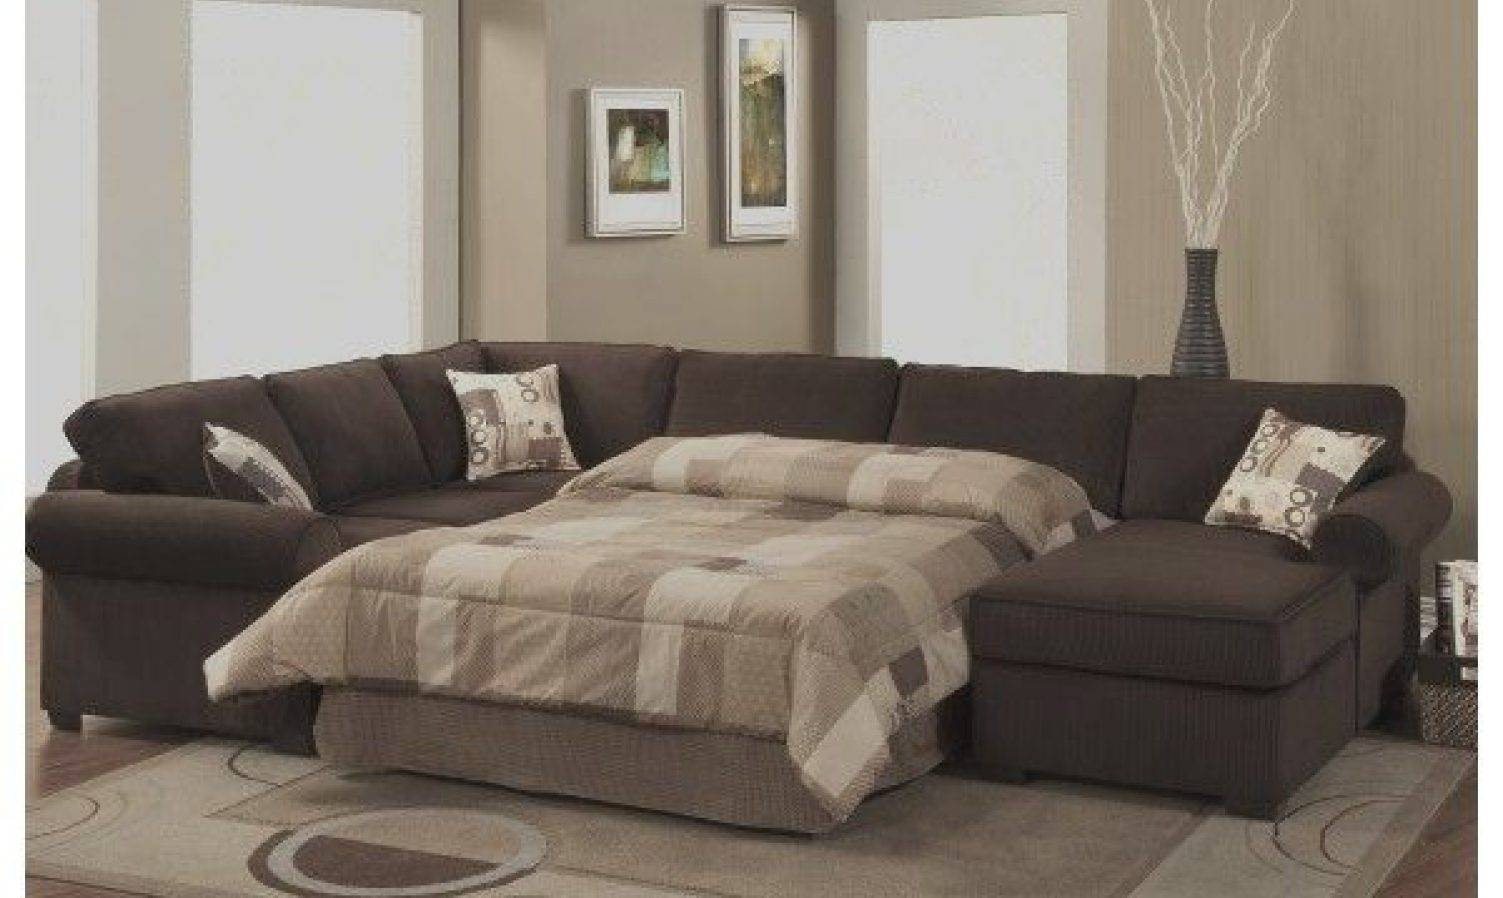 Sofa : Microfiber Sleeper Sofa Prominent Bradley Microfiber Full with Microsuede Sleeper Sofas (Image 14 of 15)